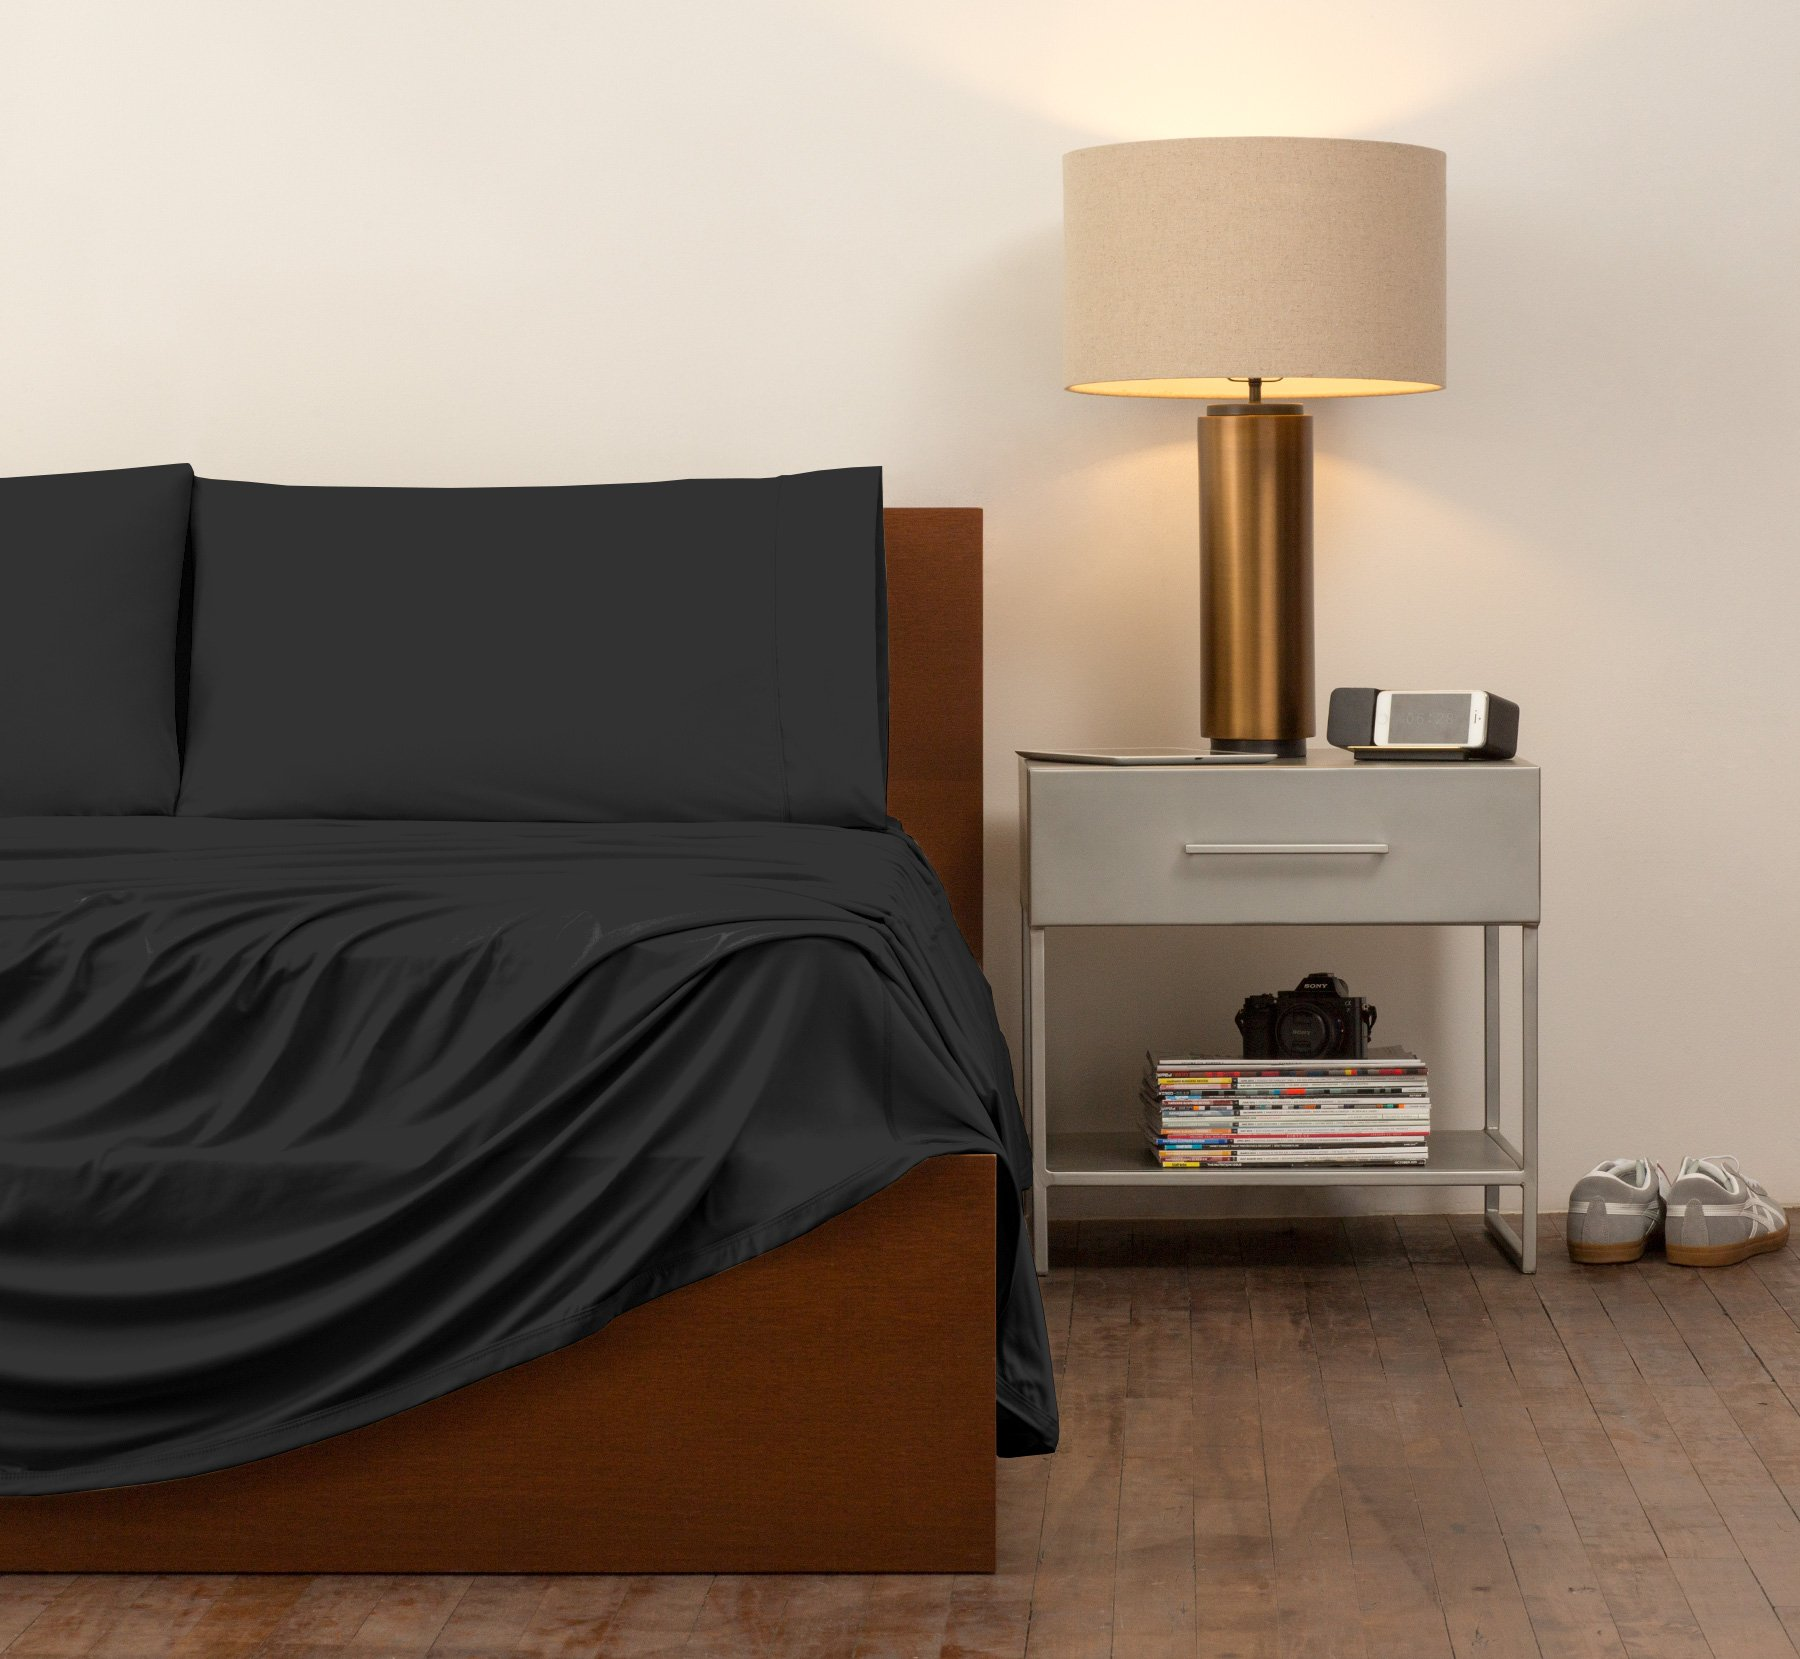 SHEEX - ORIGINAL PERFORMANCE Sheet Set with 2 Pillowcases, Ultra-Soft Fabric Transfers Body Heat and Breathes Better than Traditional Cotton, Black (Queen)